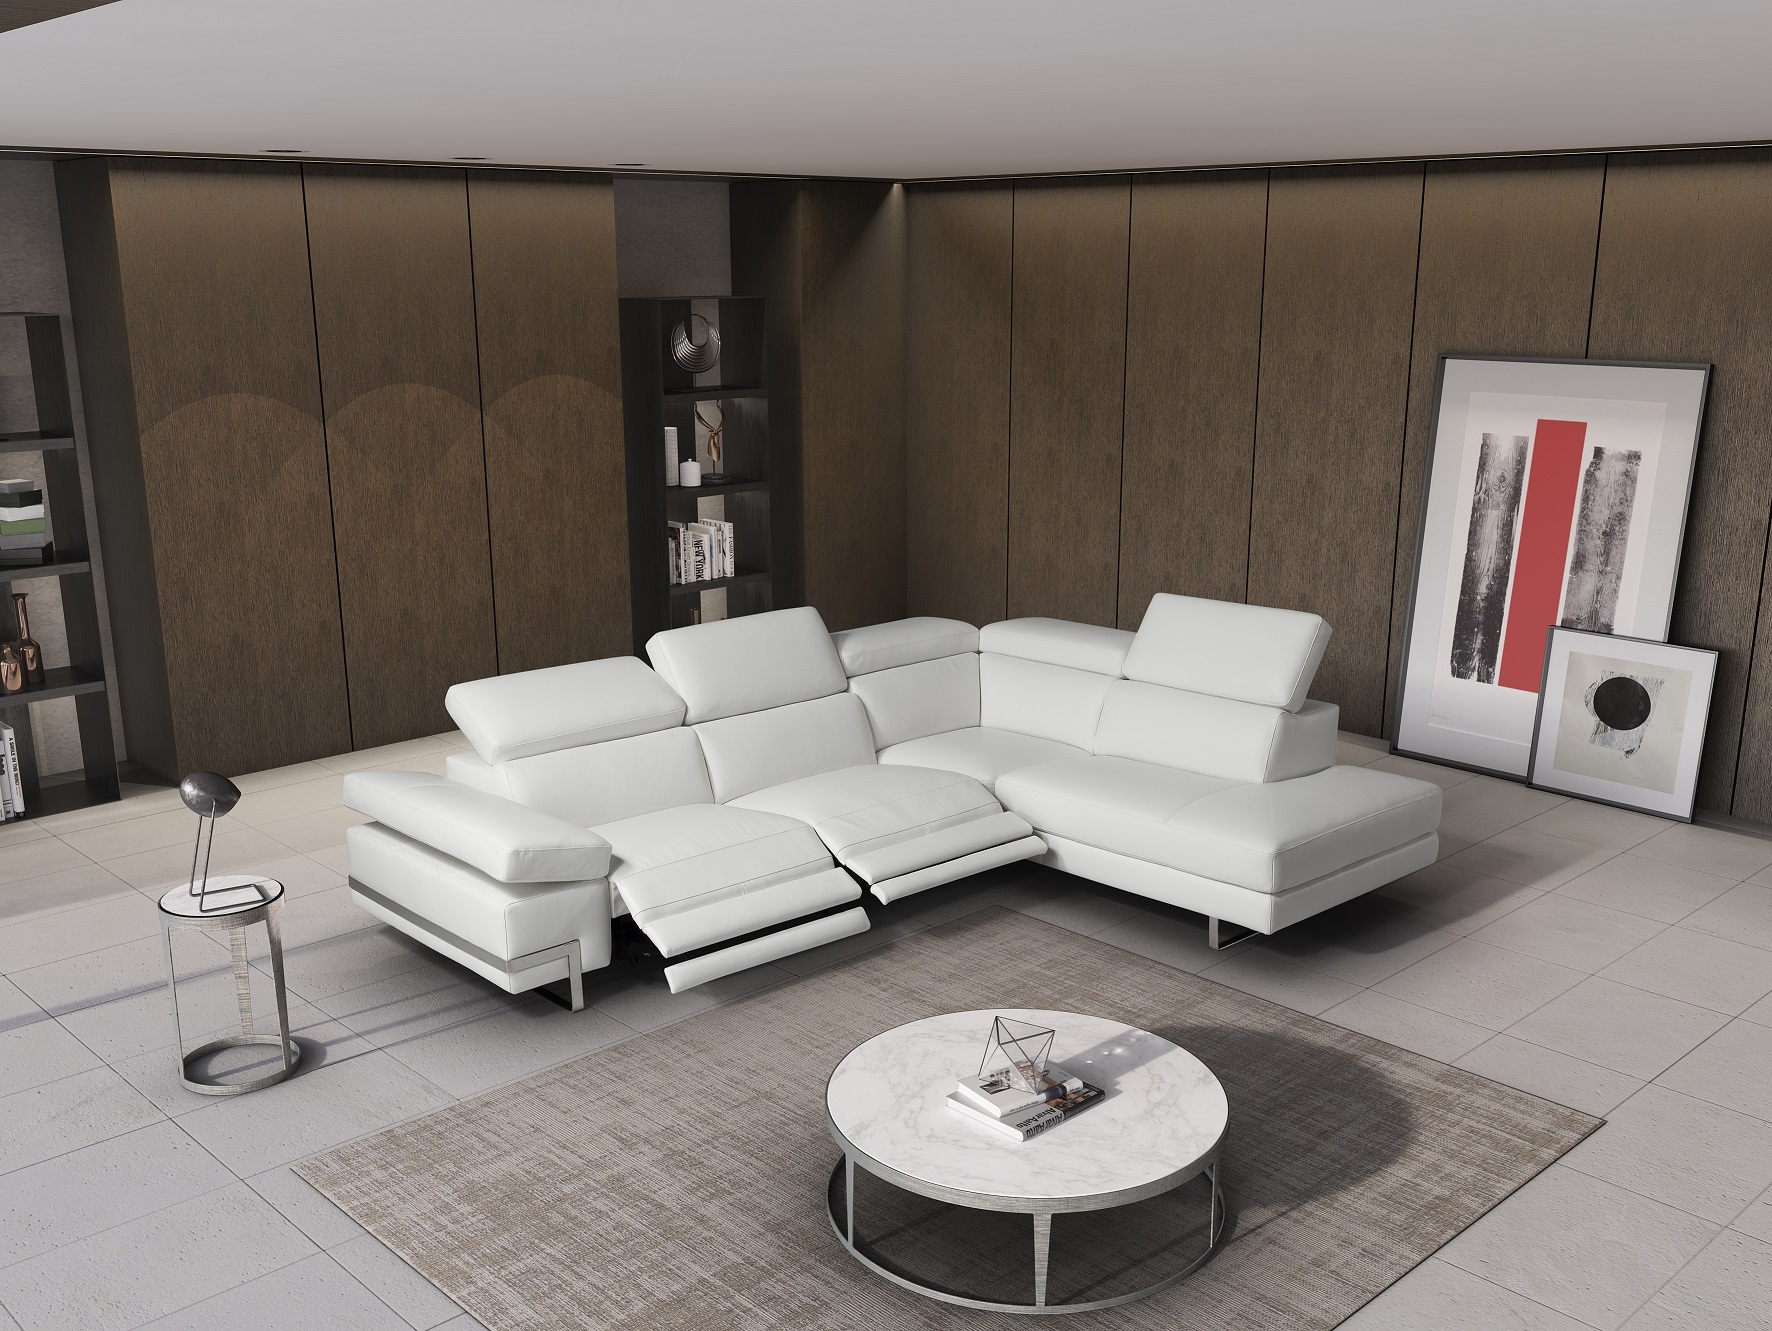 Livio Stock Item Fabio Co Italia Modern Italian Furniture